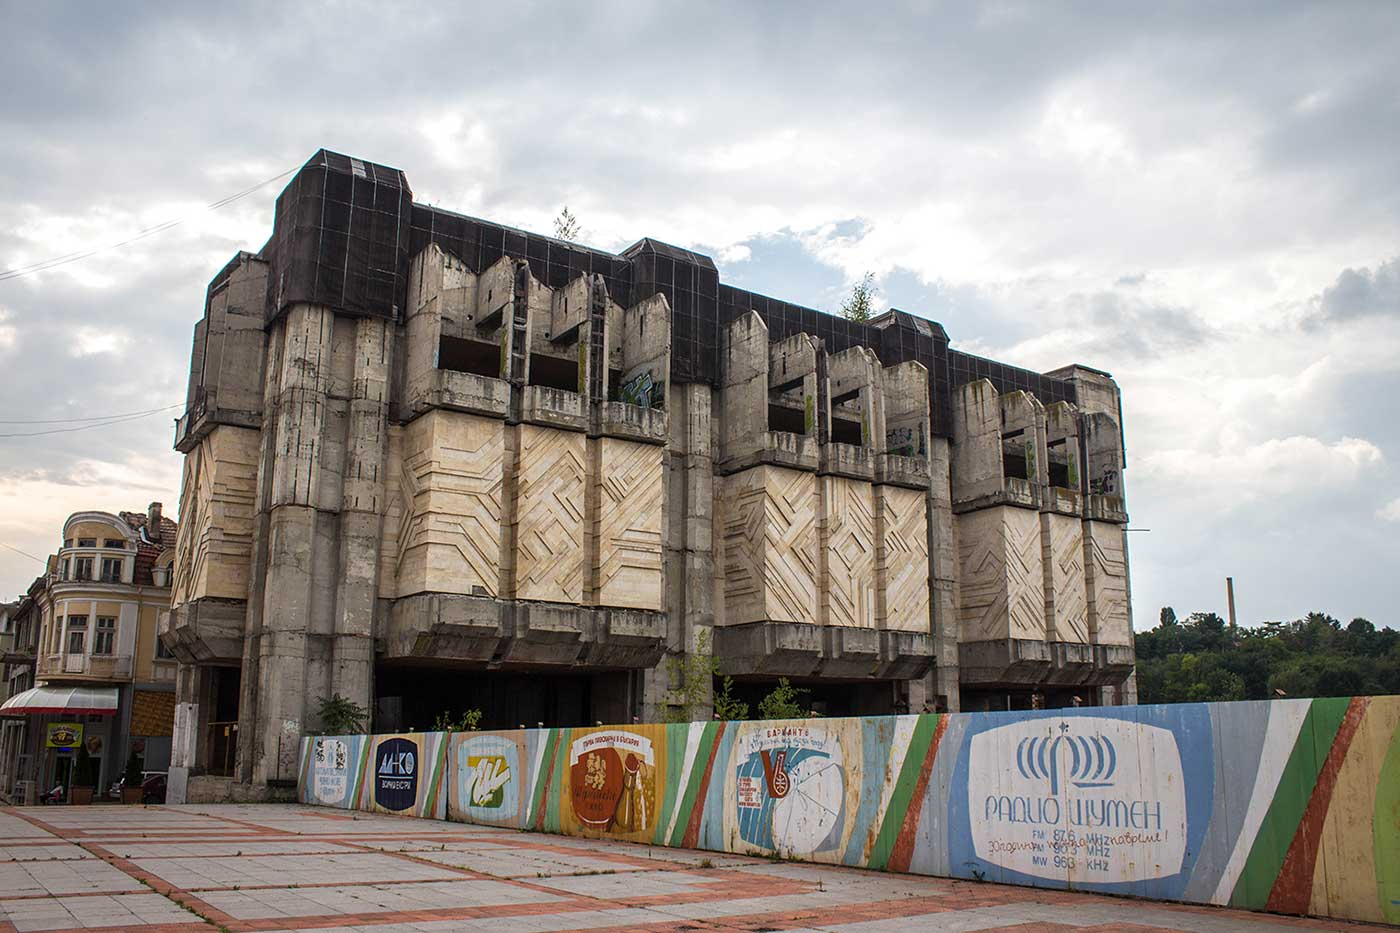 The six-storey western block of Shumen Central City Square rises behind a fence painted with vintage advertising. Bulgaria.